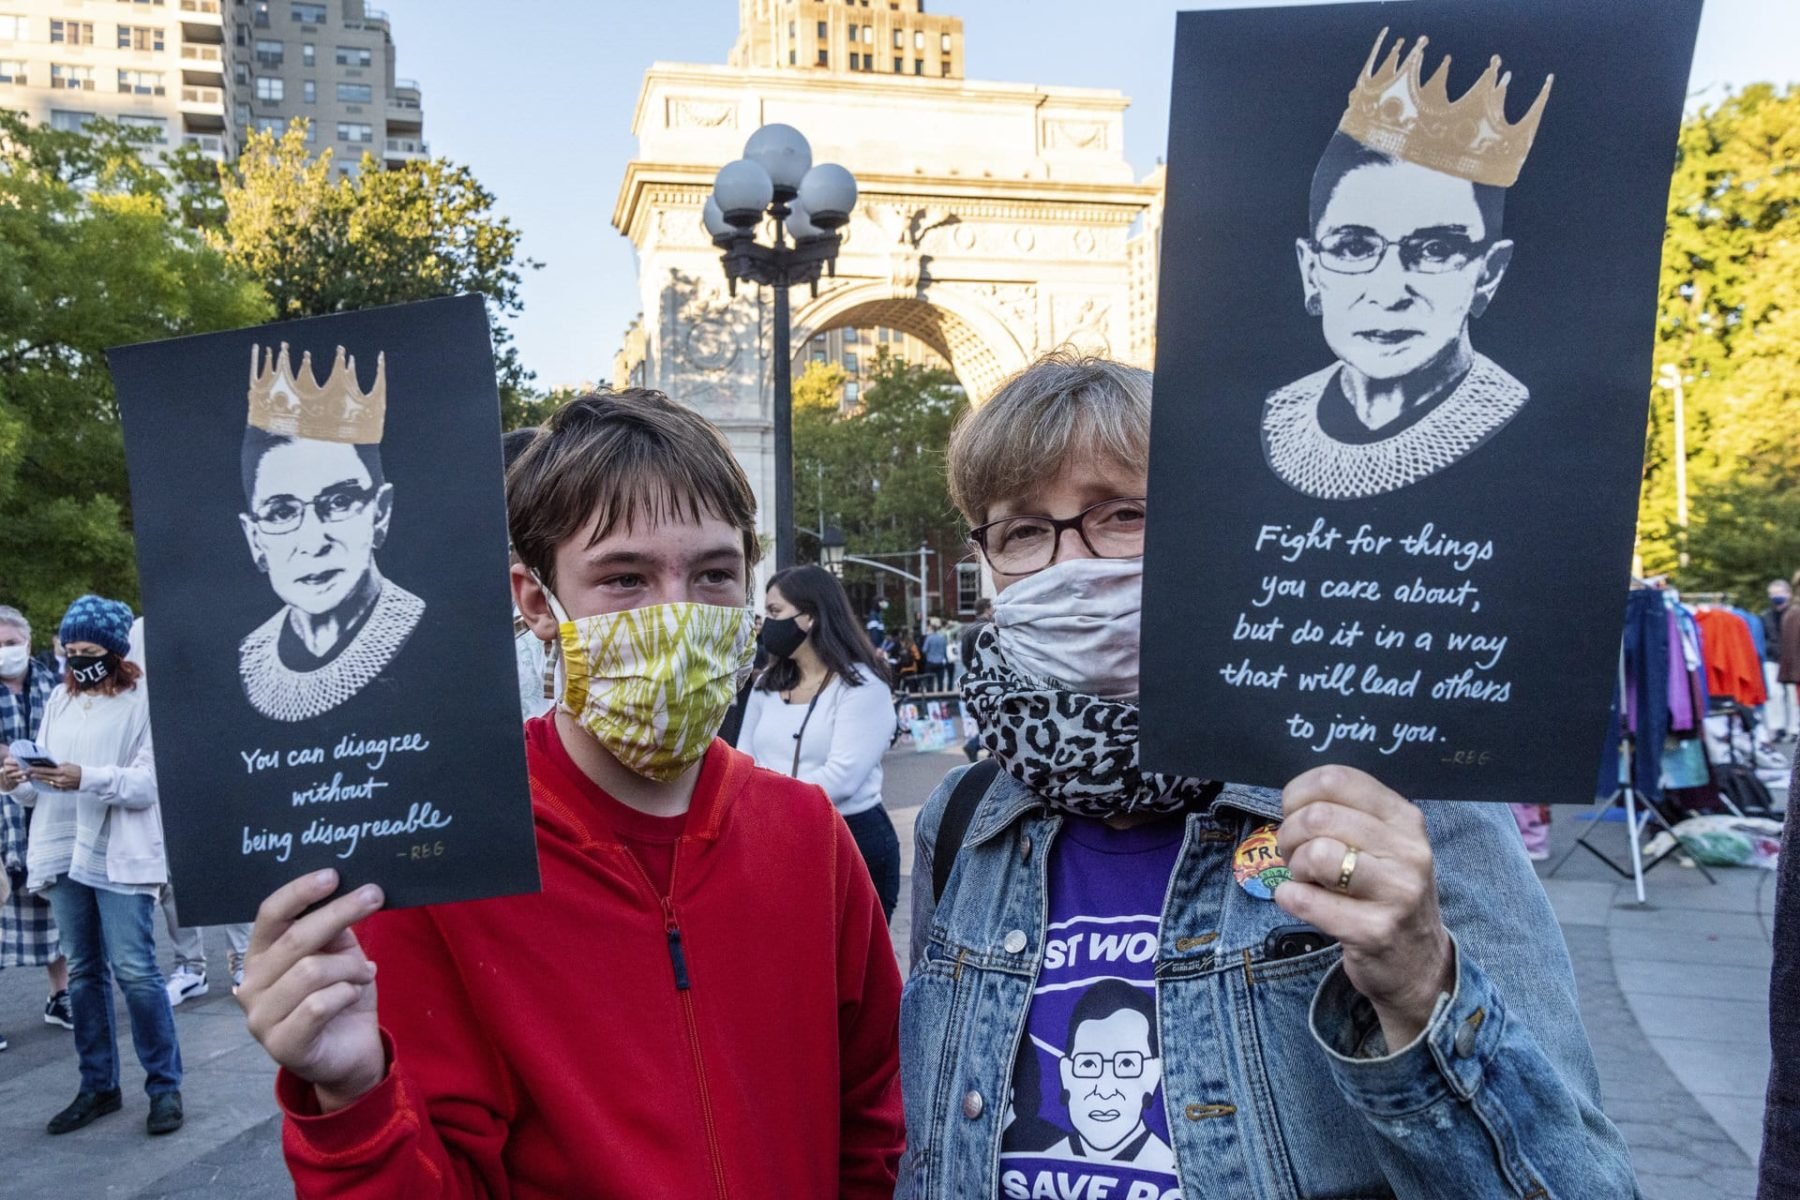 Two people carrying signs with Ruth Bader Ginsburg's face on them.